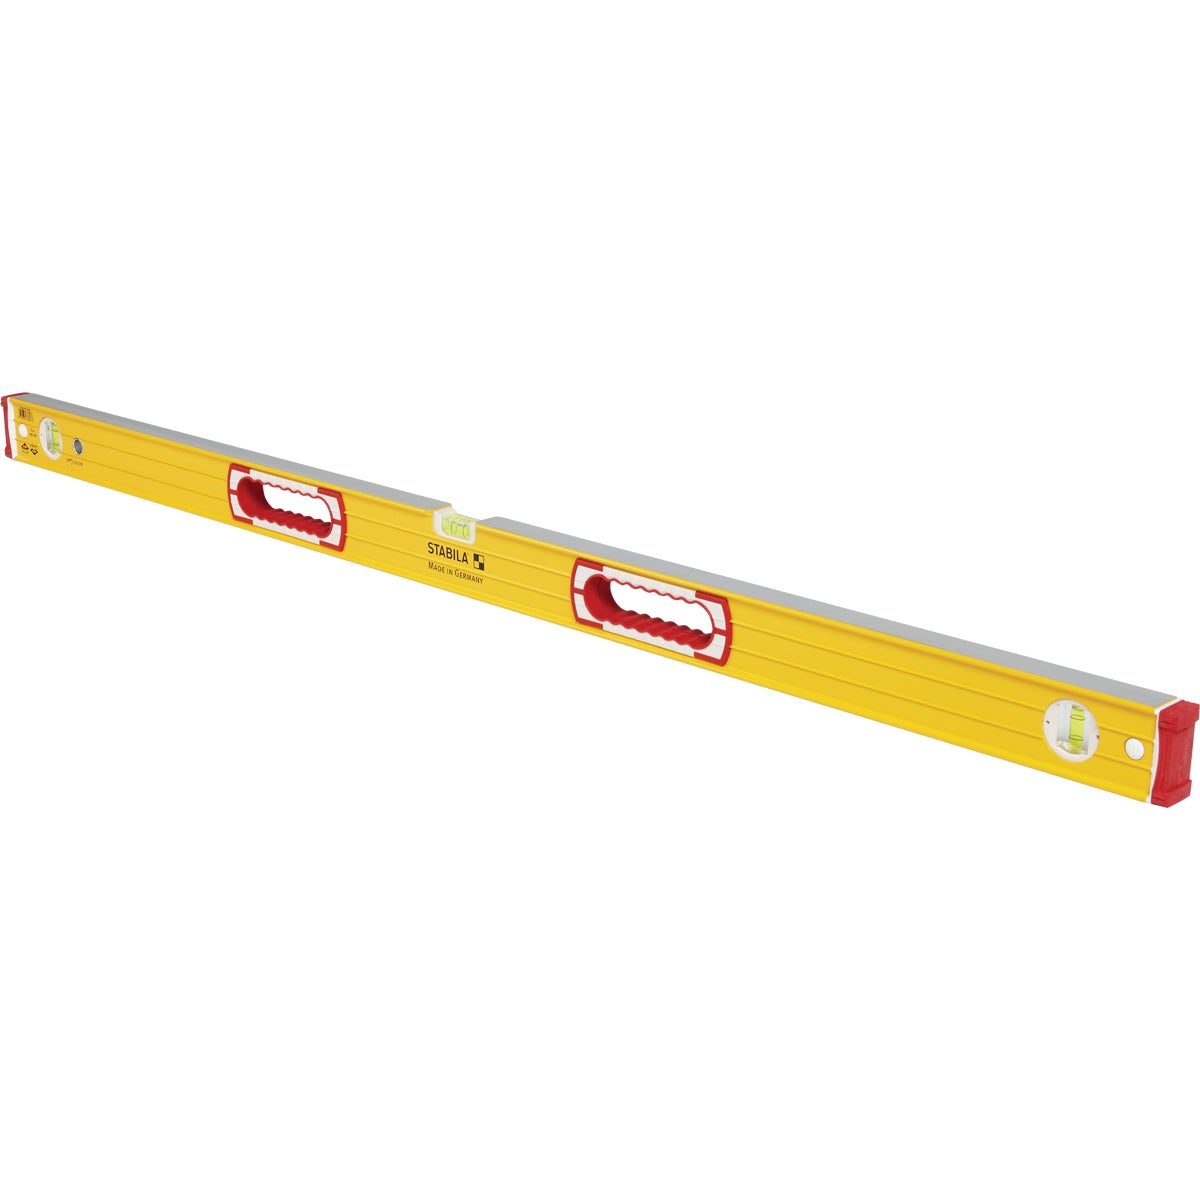 "48"" MAGNETIC ALUM LEVEL - 38648 by Stabila"